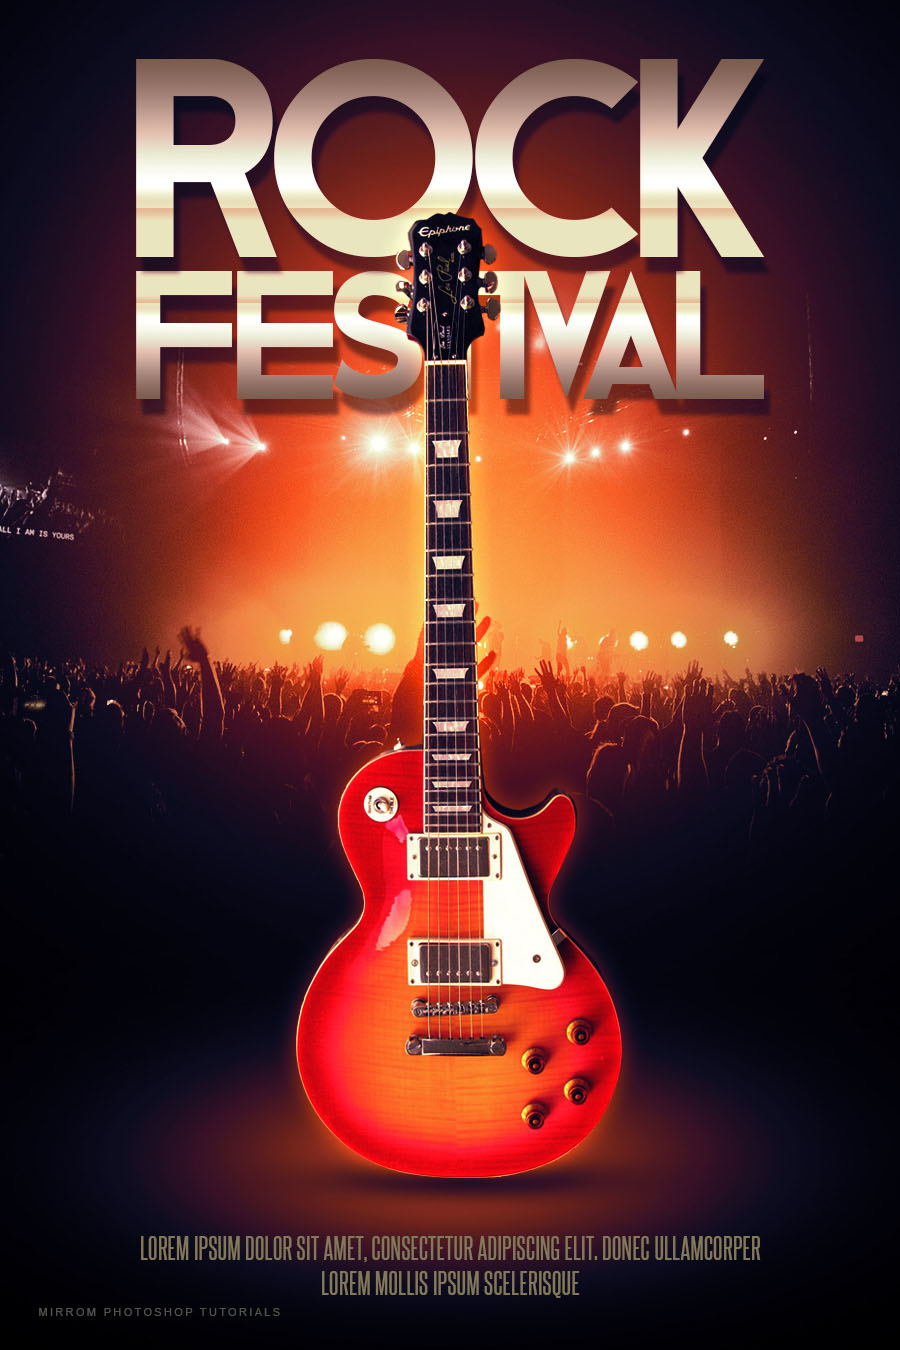 Create a Rock Festival Poster Design in Photoshop